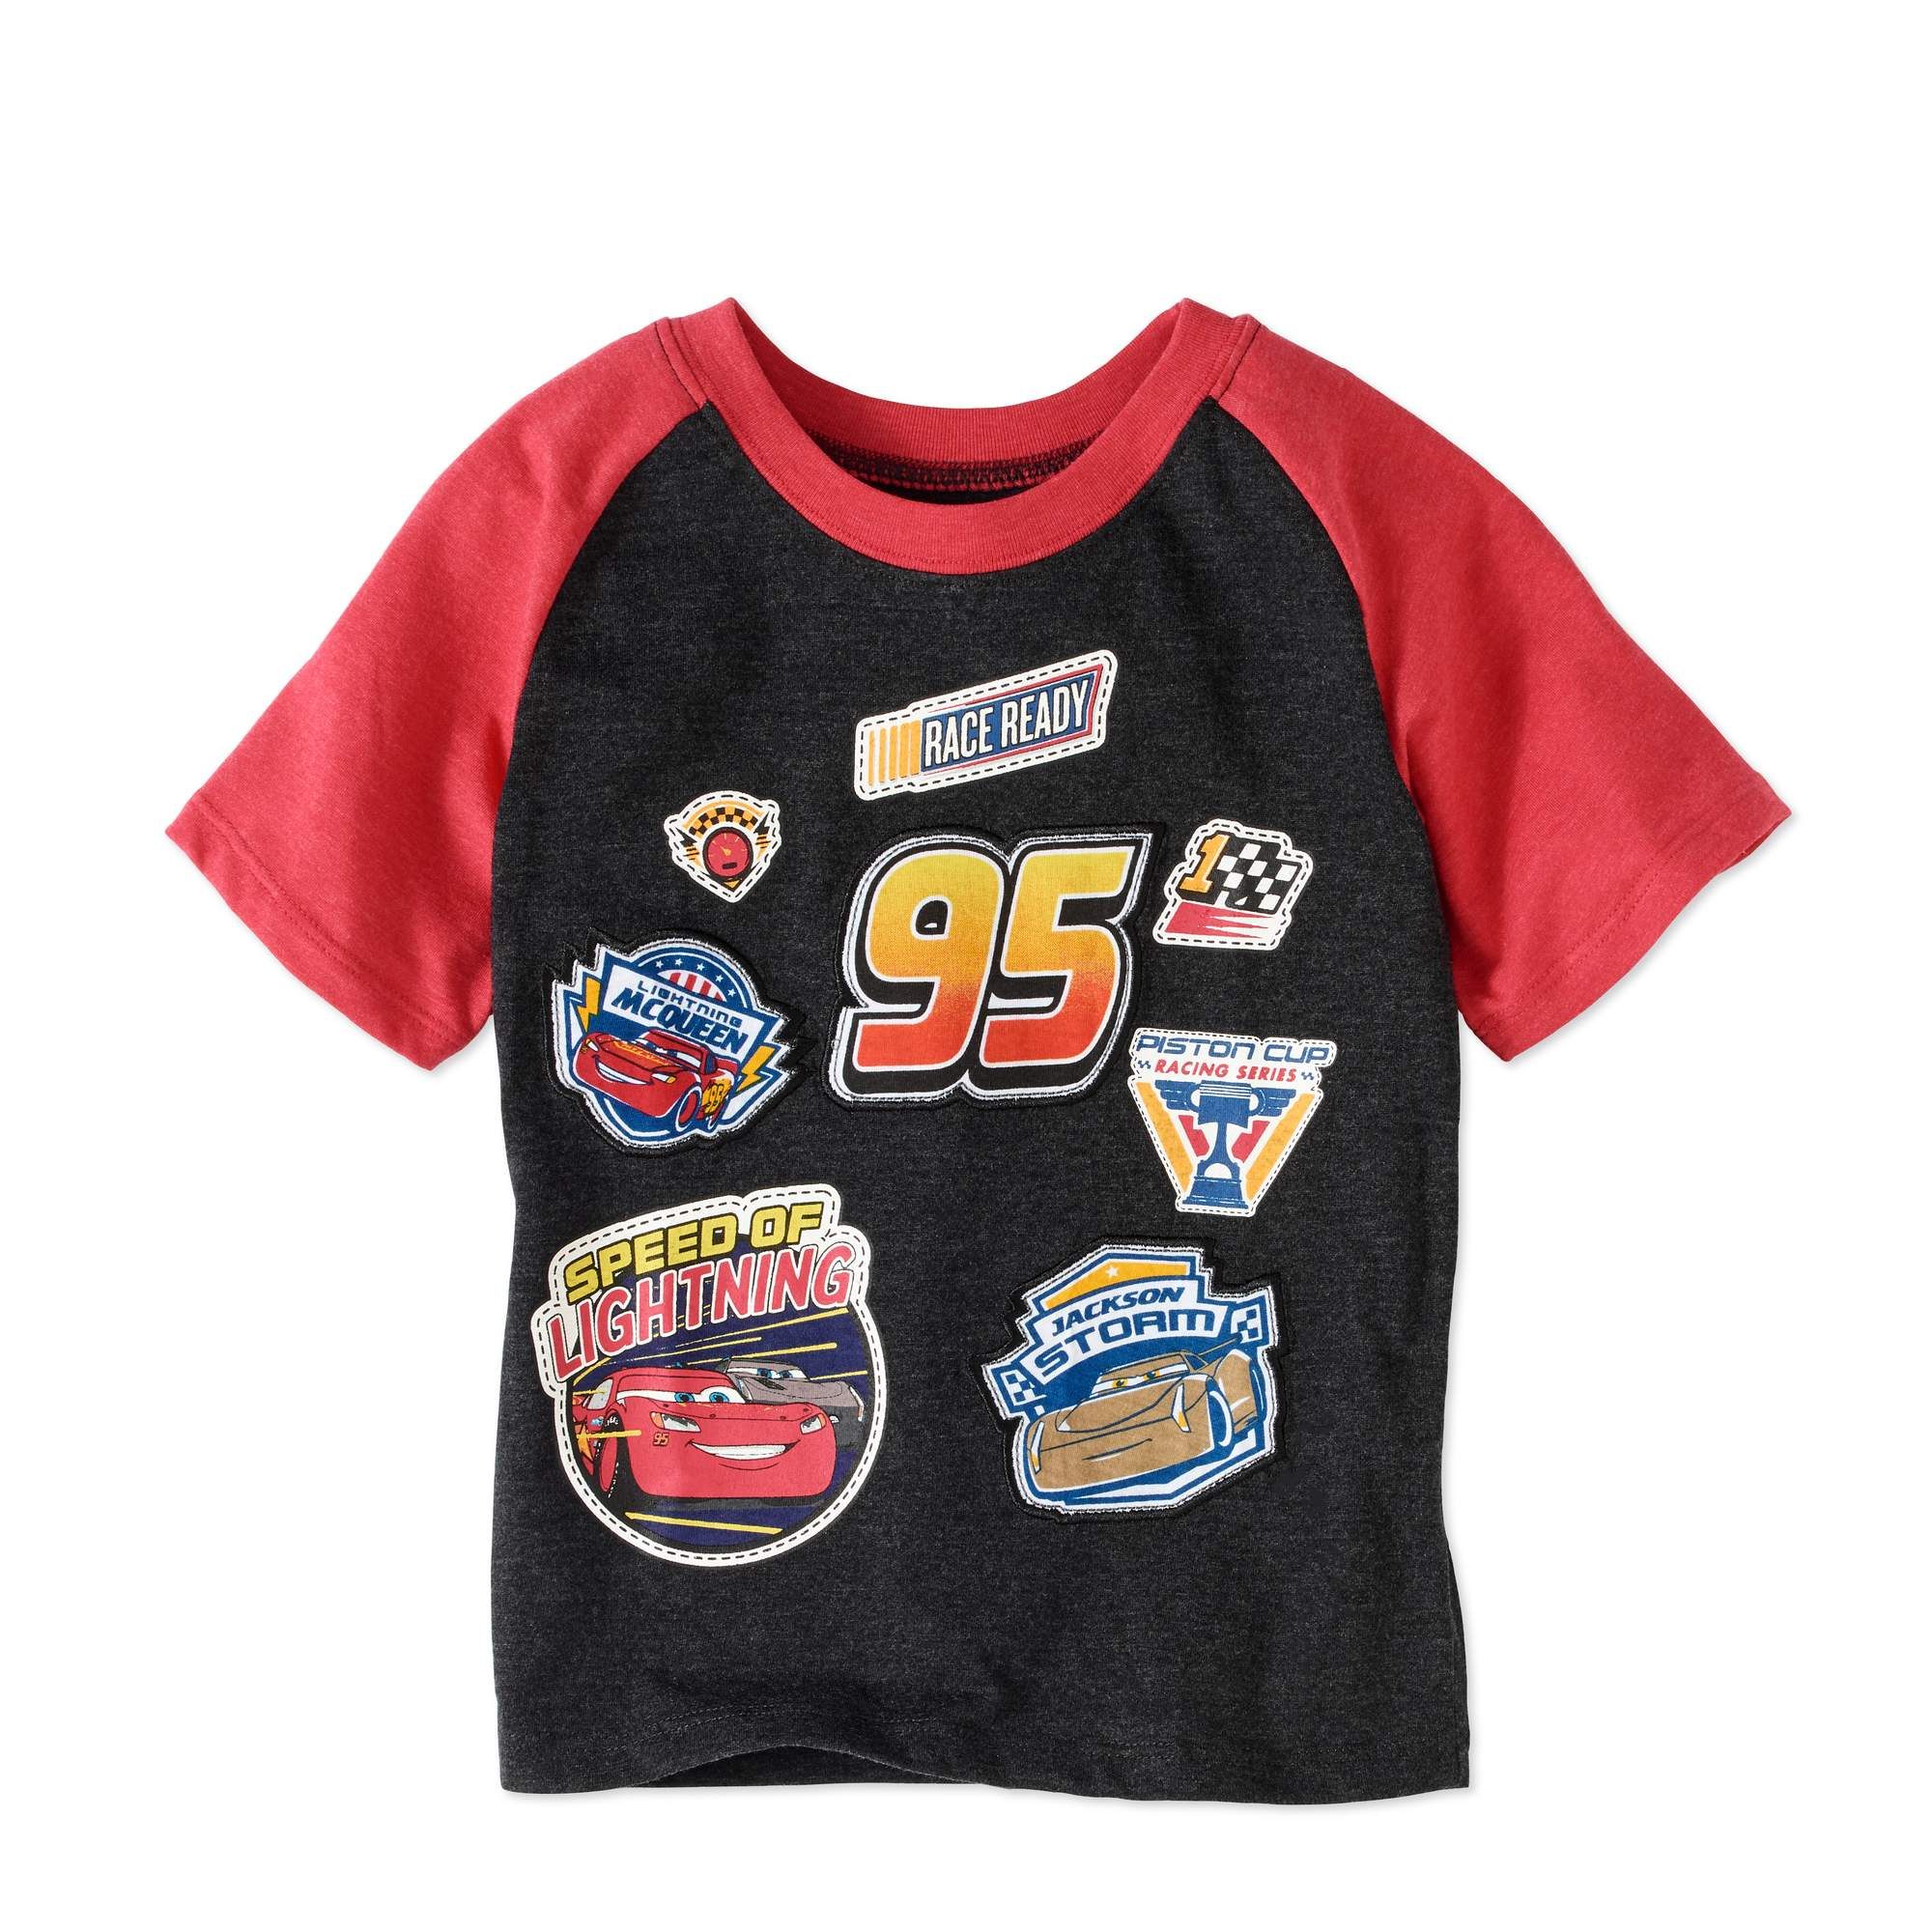 Cars Toddler Boys' Short Sleeve Raglan Embroidered Patches T-Shirt